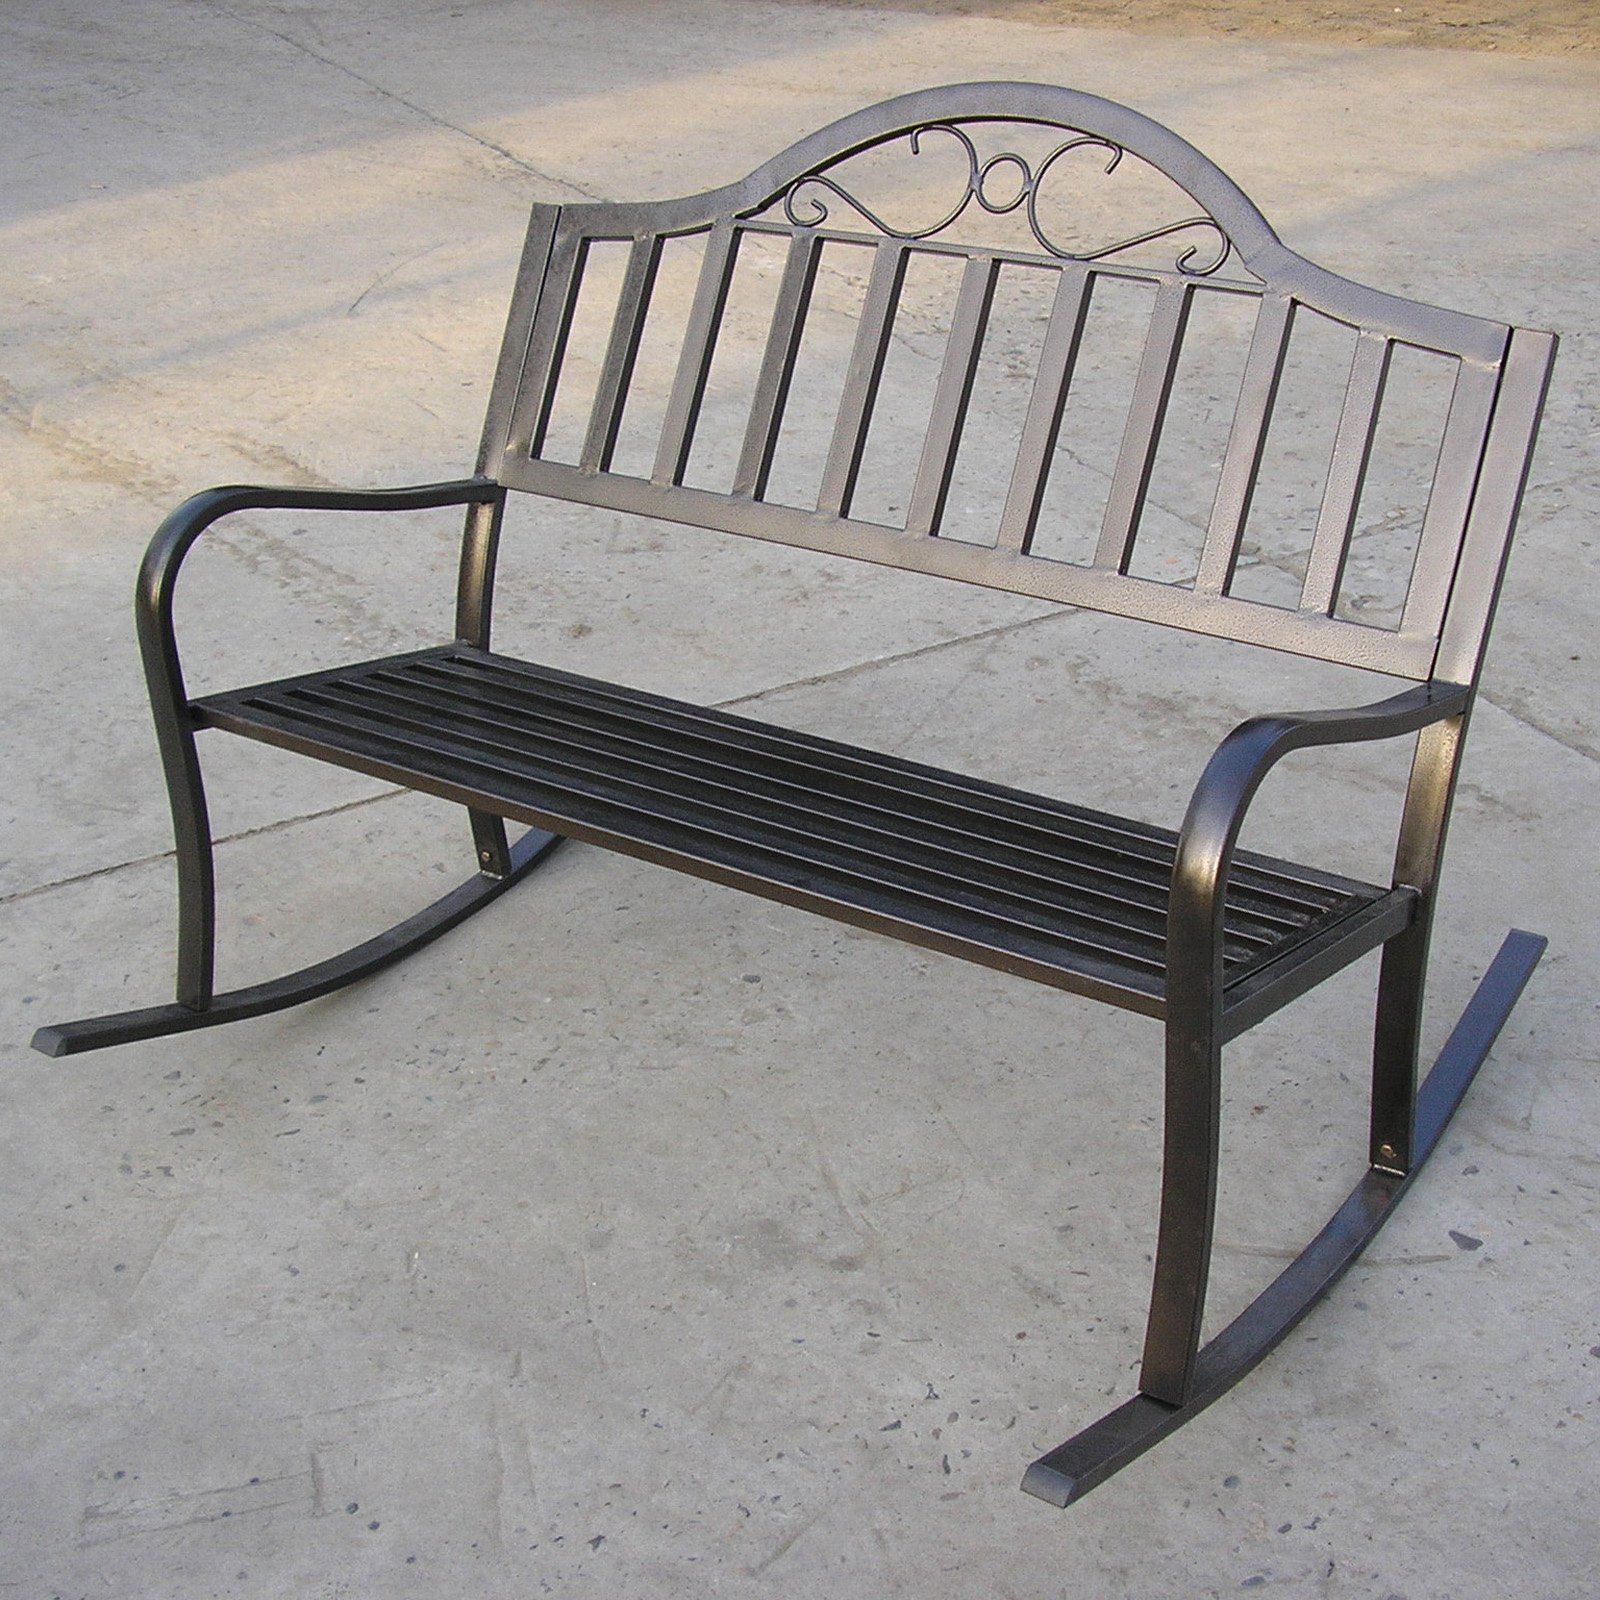 Oakland Living Rochester Tubular Iron Rocking Bench In Hammer Tone Bronze